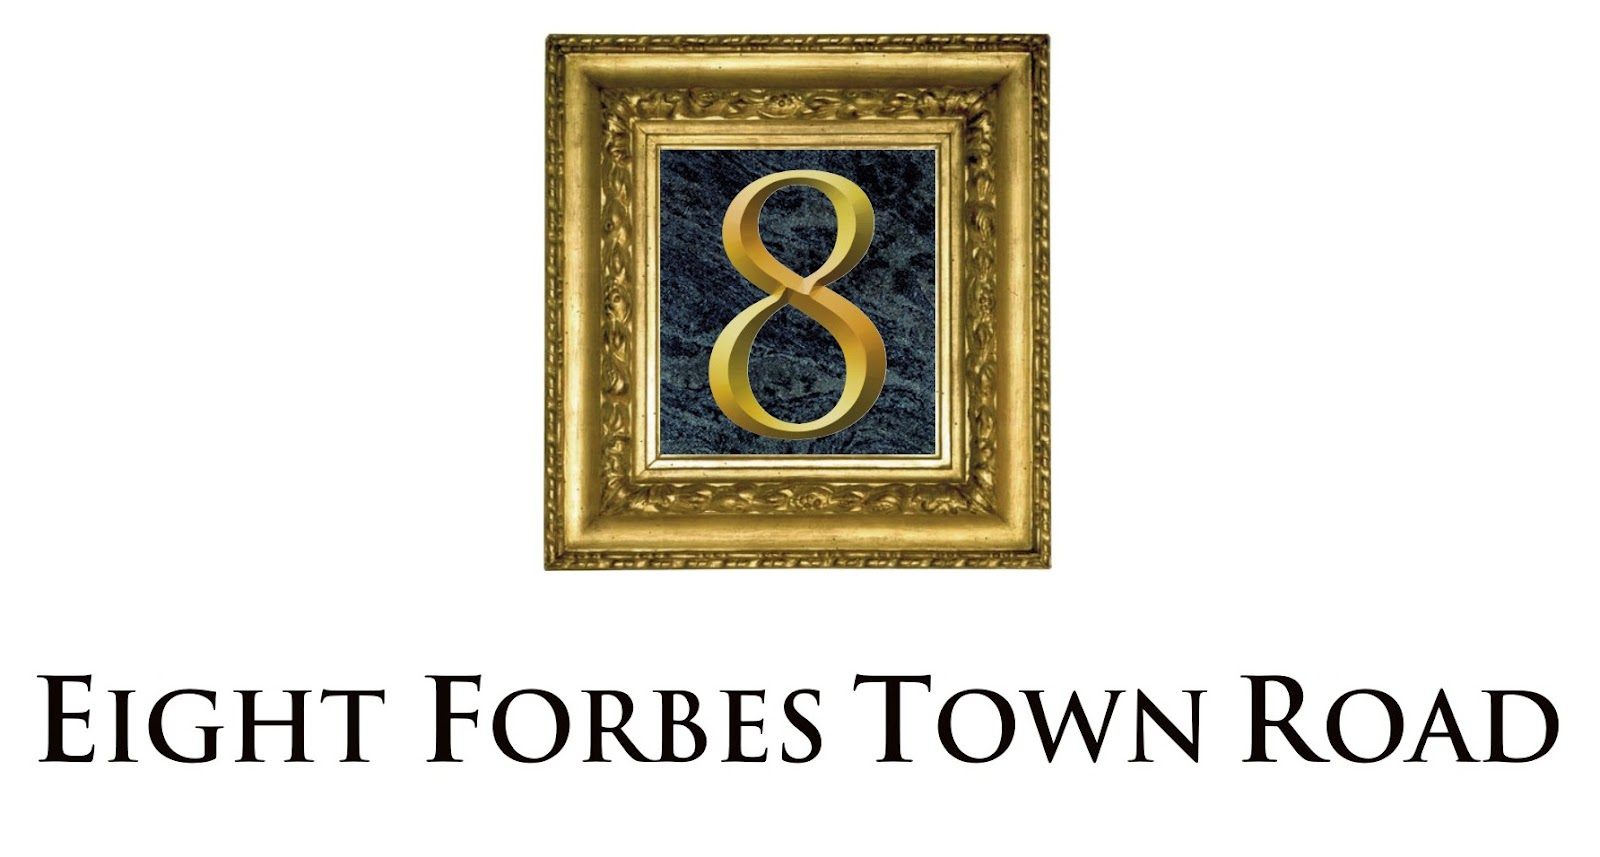 forbes road men Quality local news forbes road pennsylvania daily local news forbes road pa forbes road pennsylvania local news you can trust.